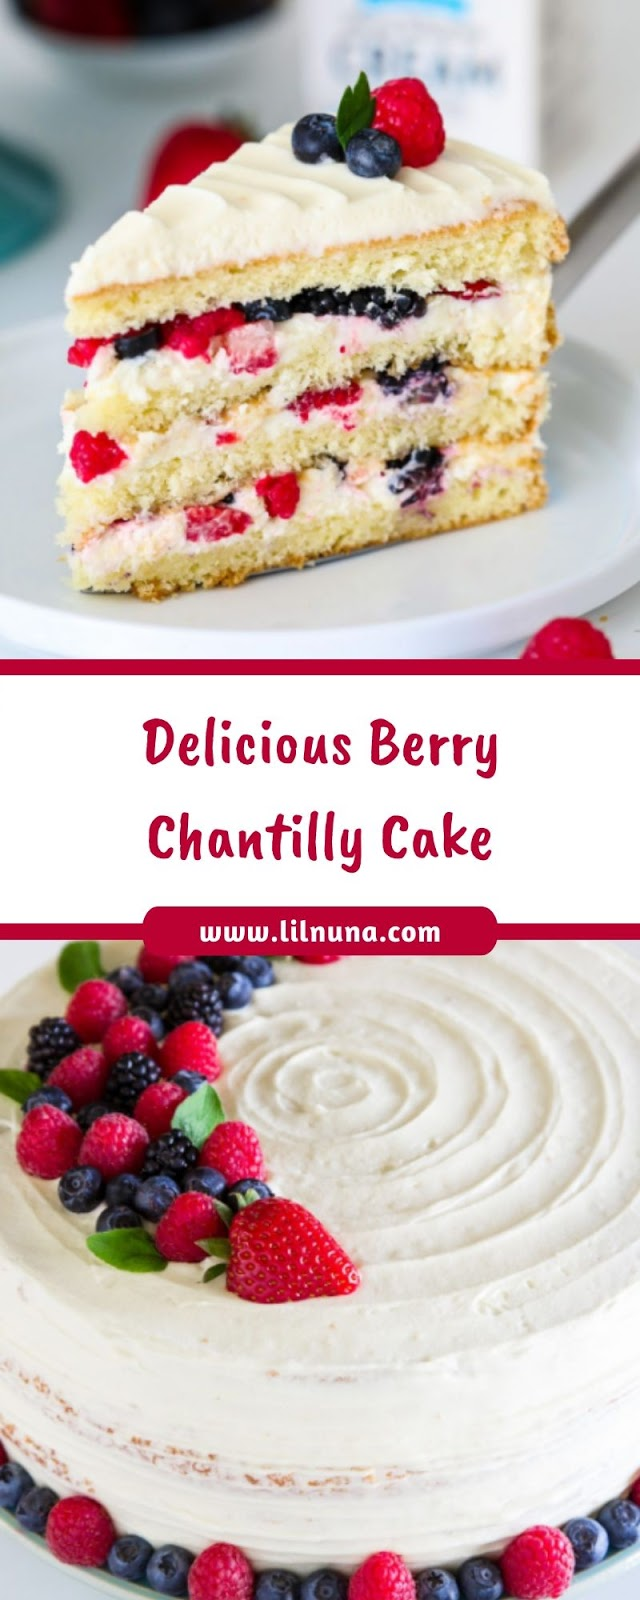 Delicious Berry Chantilly Cake